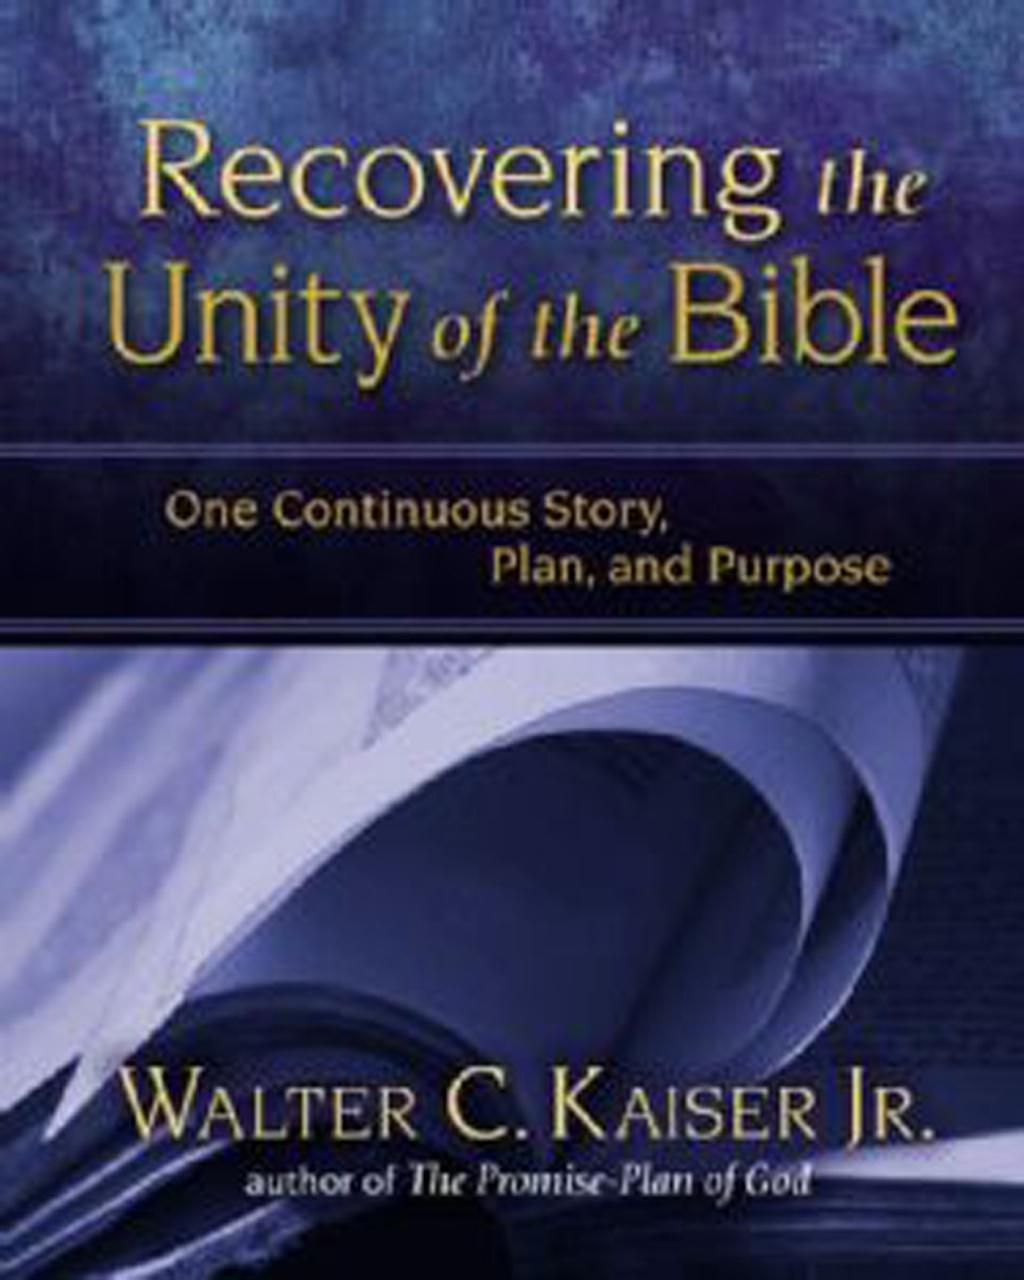 Recovering the Unity of the Bible